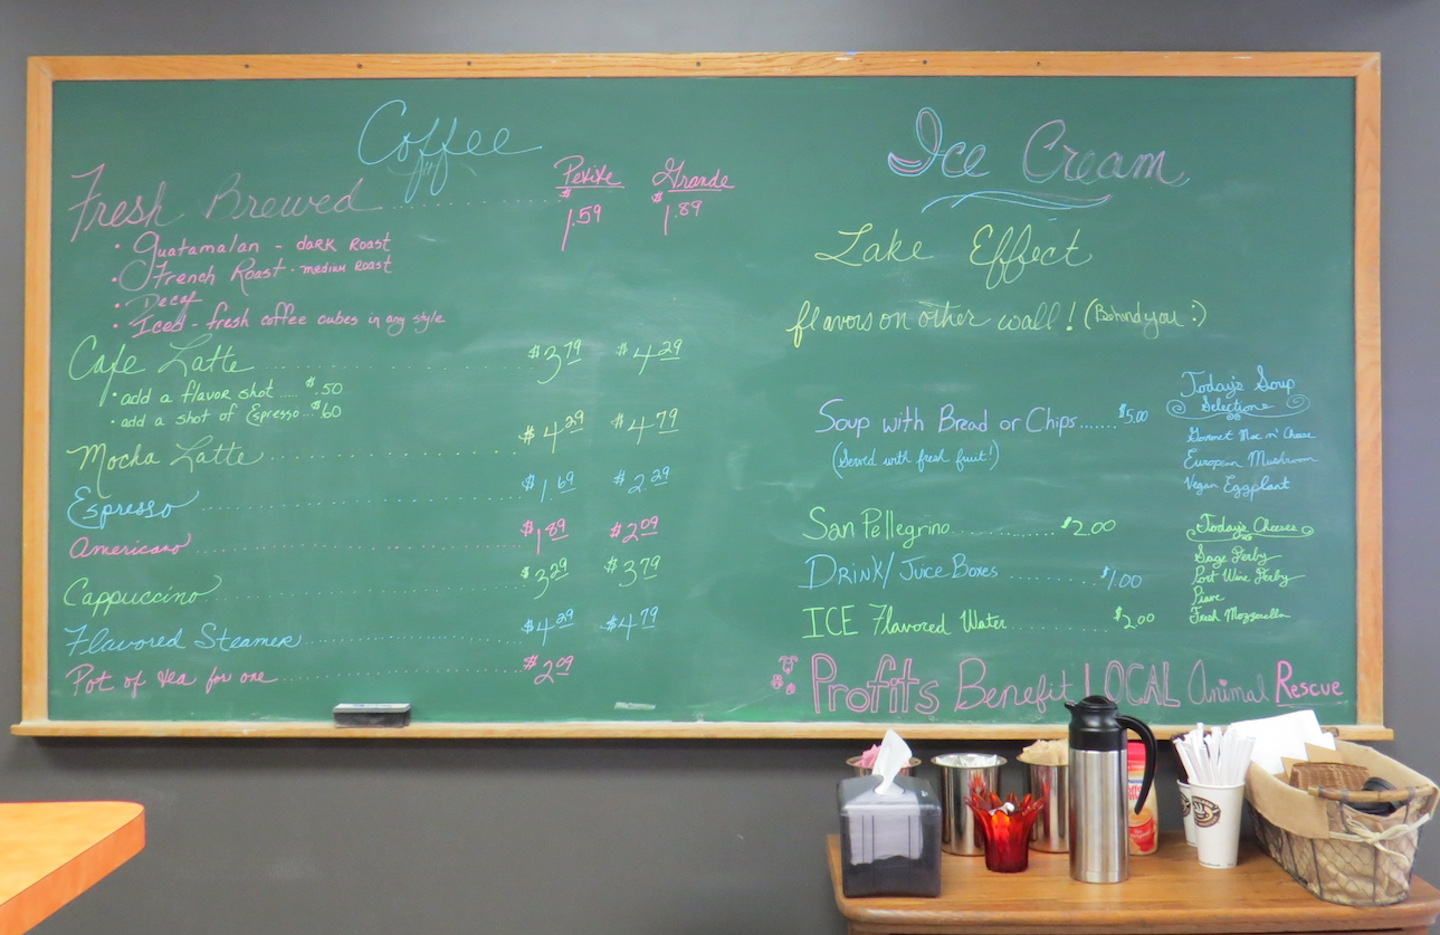 The Grandpaws Café for Good big board of menu items.